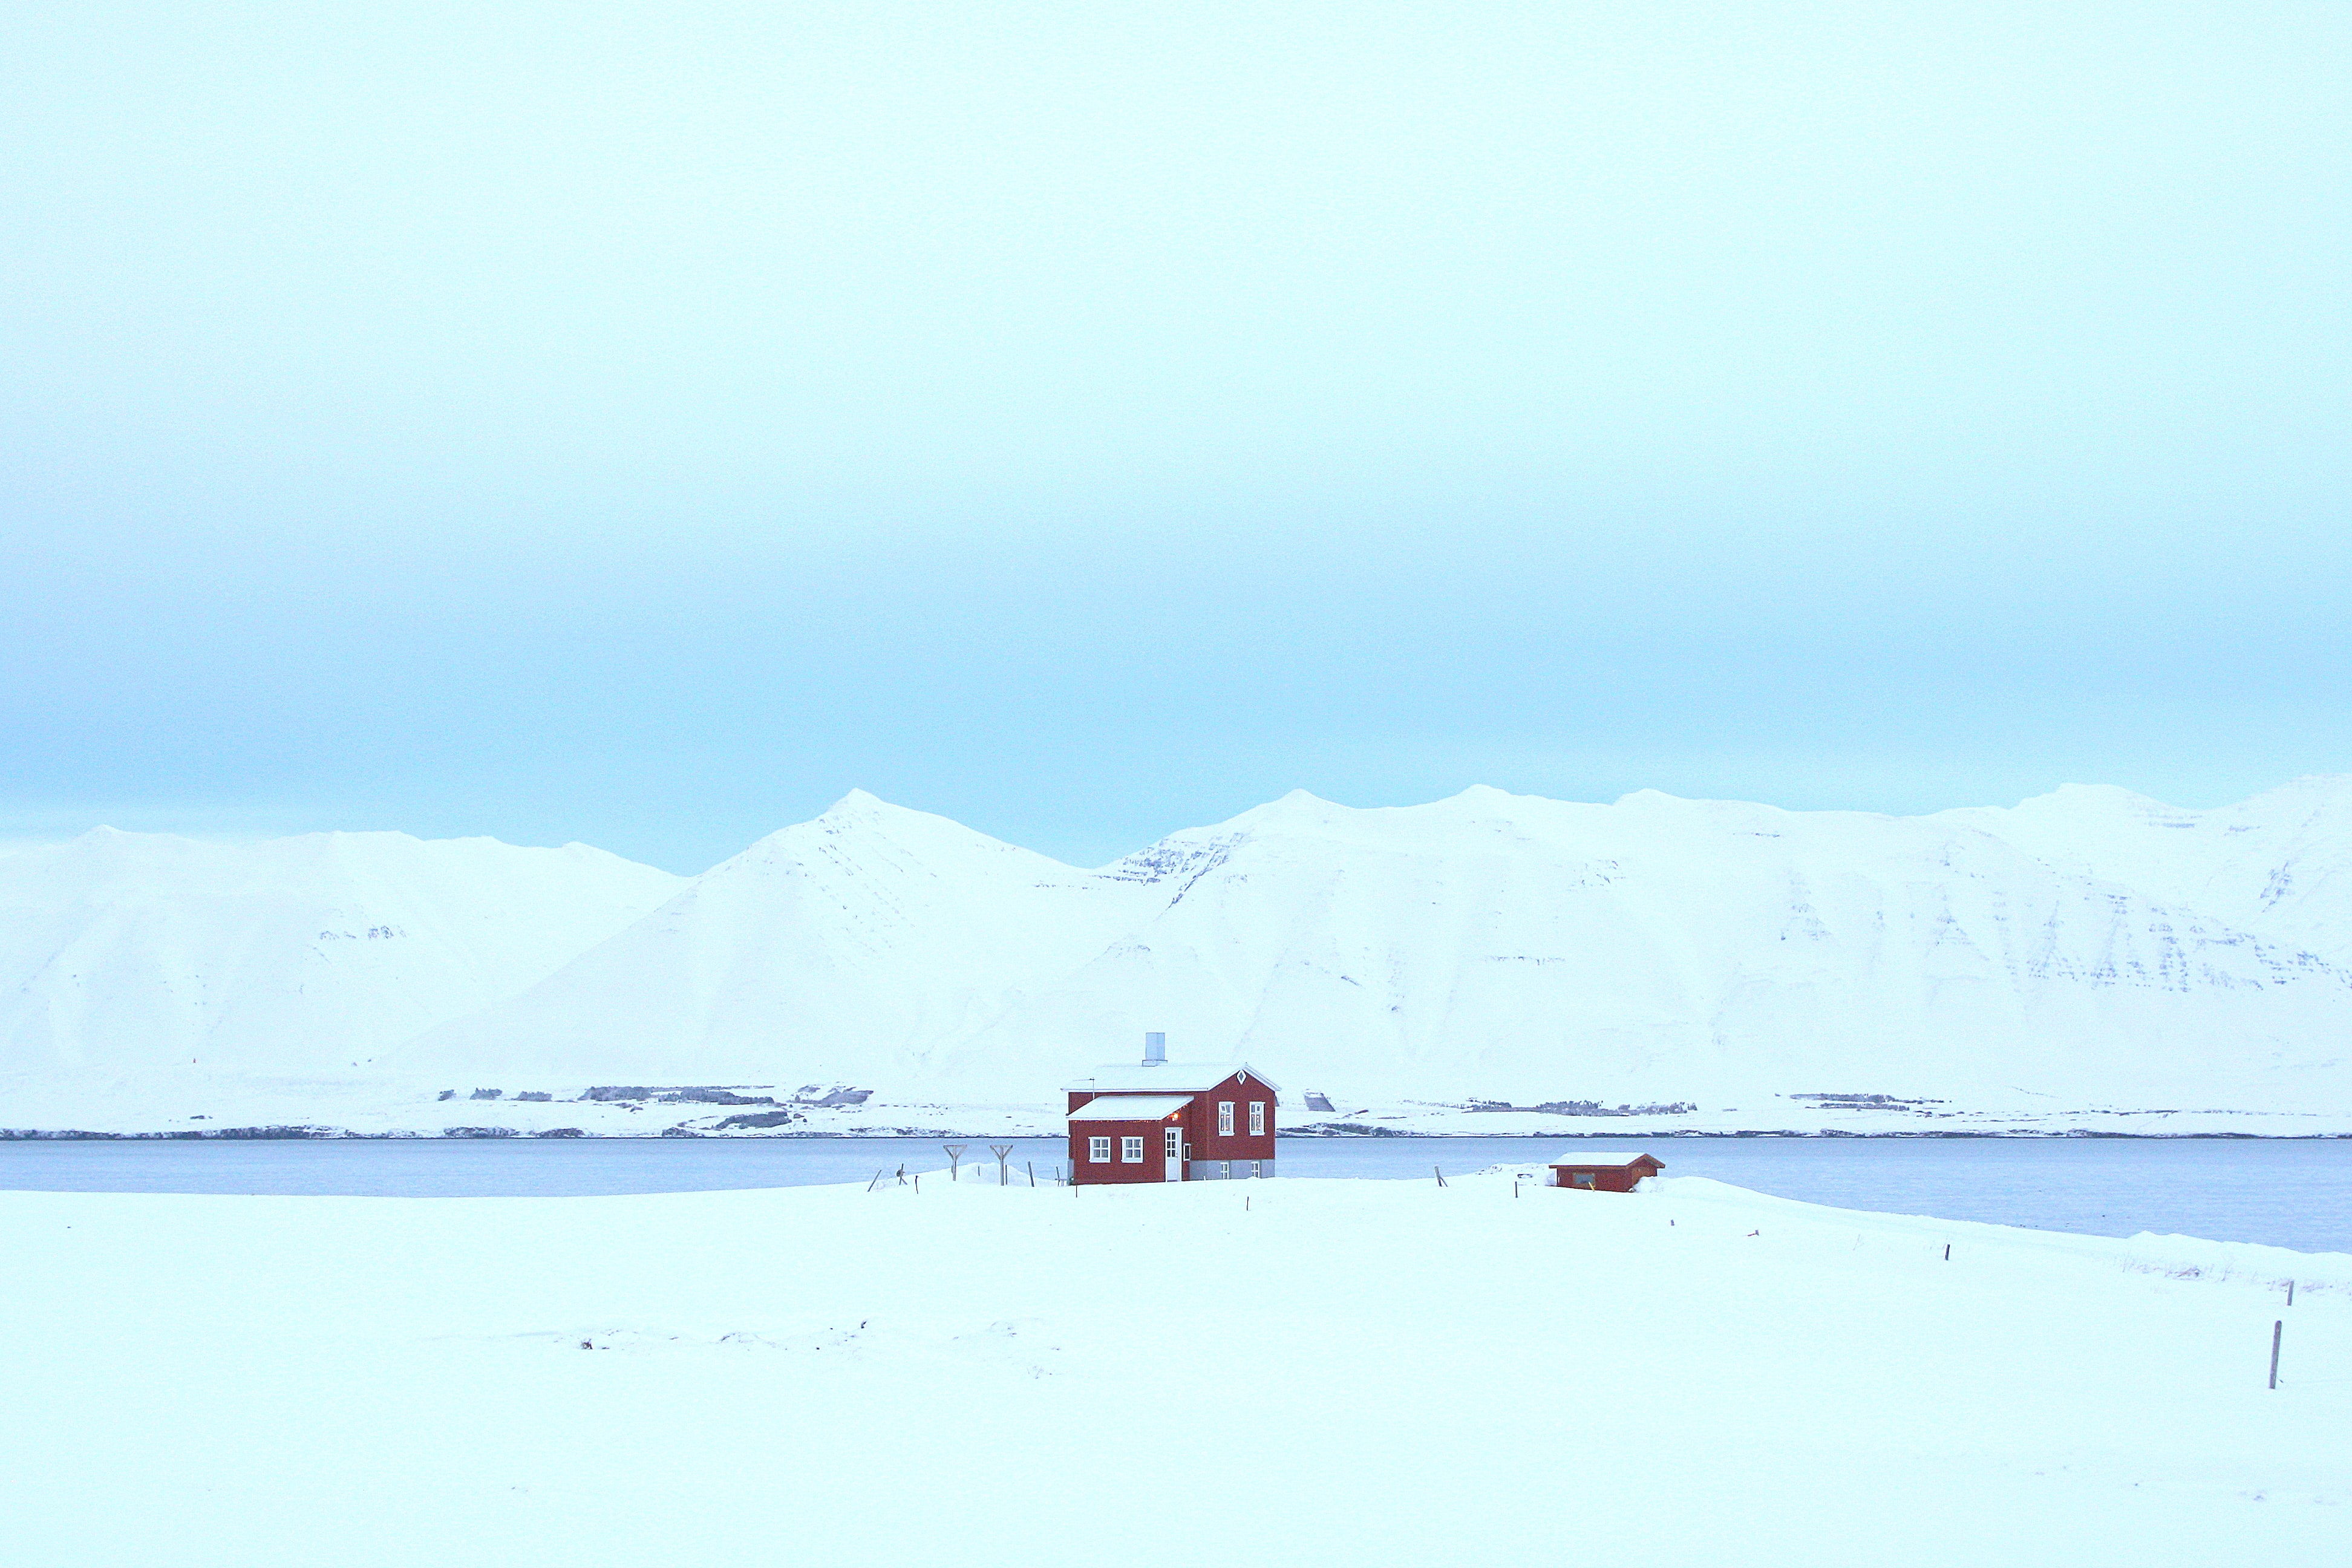 A lone cabin by the lake surrounded by white snow